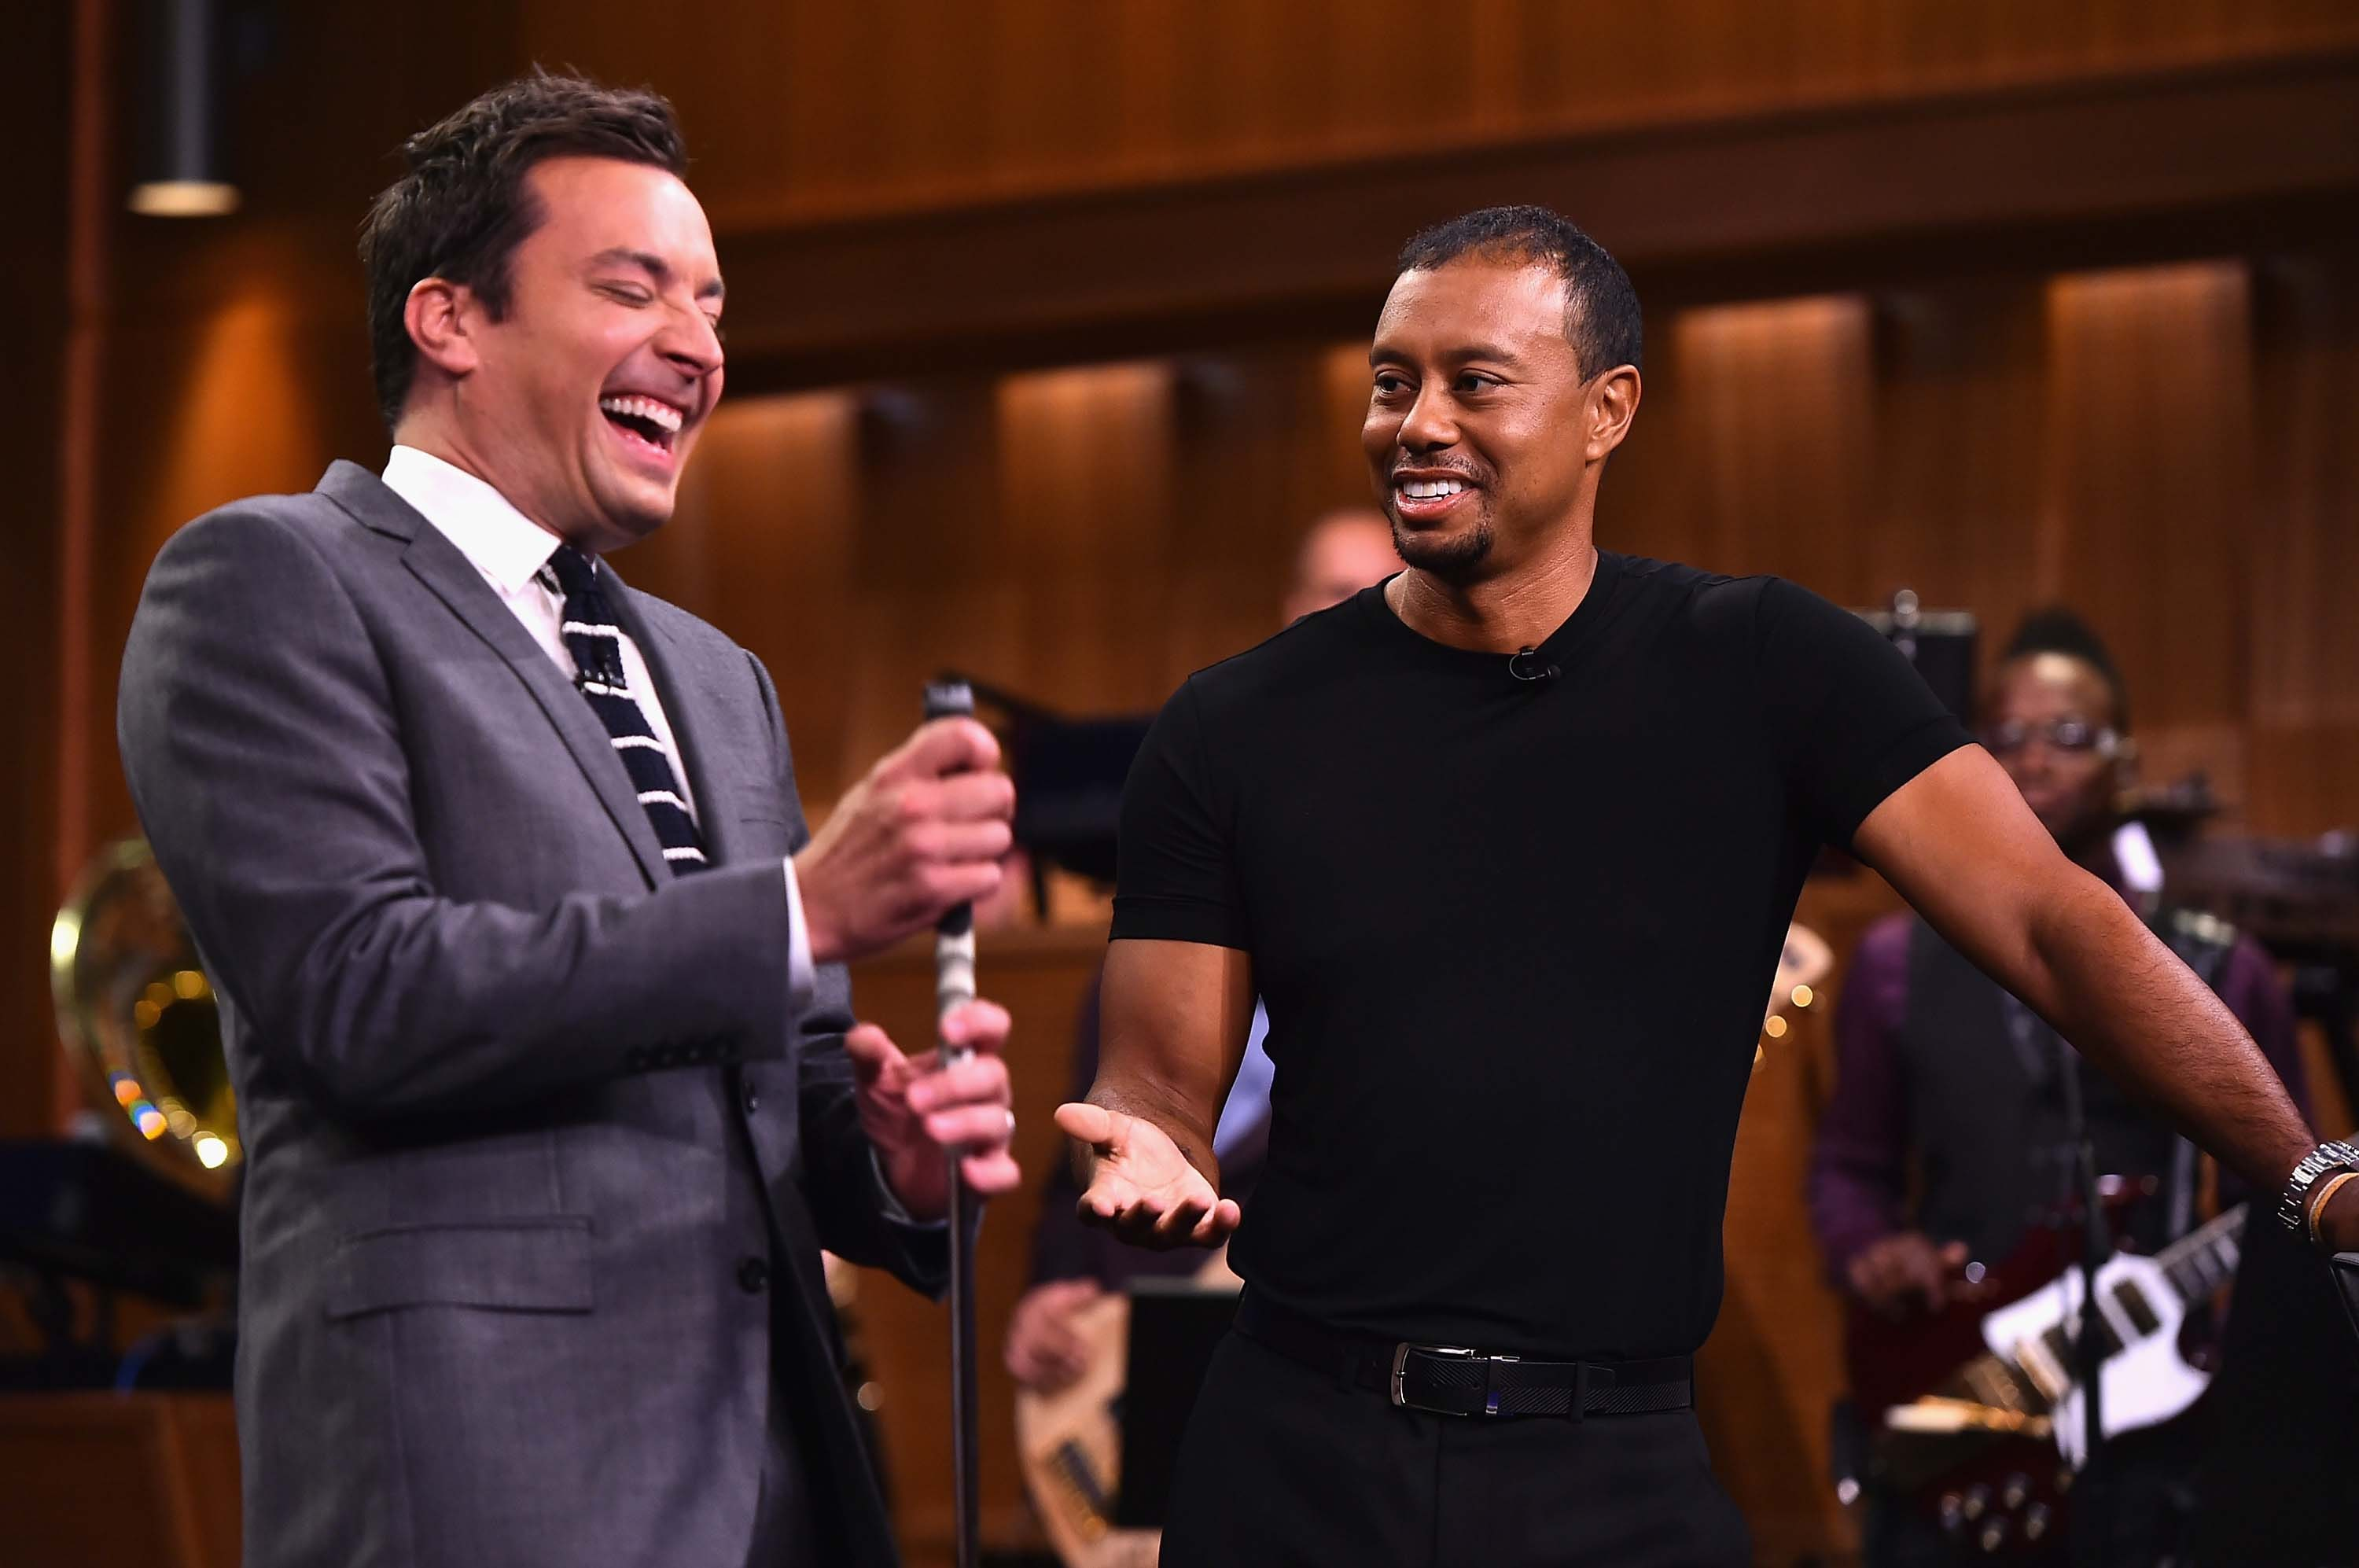 Tiger Woods and Jimmy Fallon